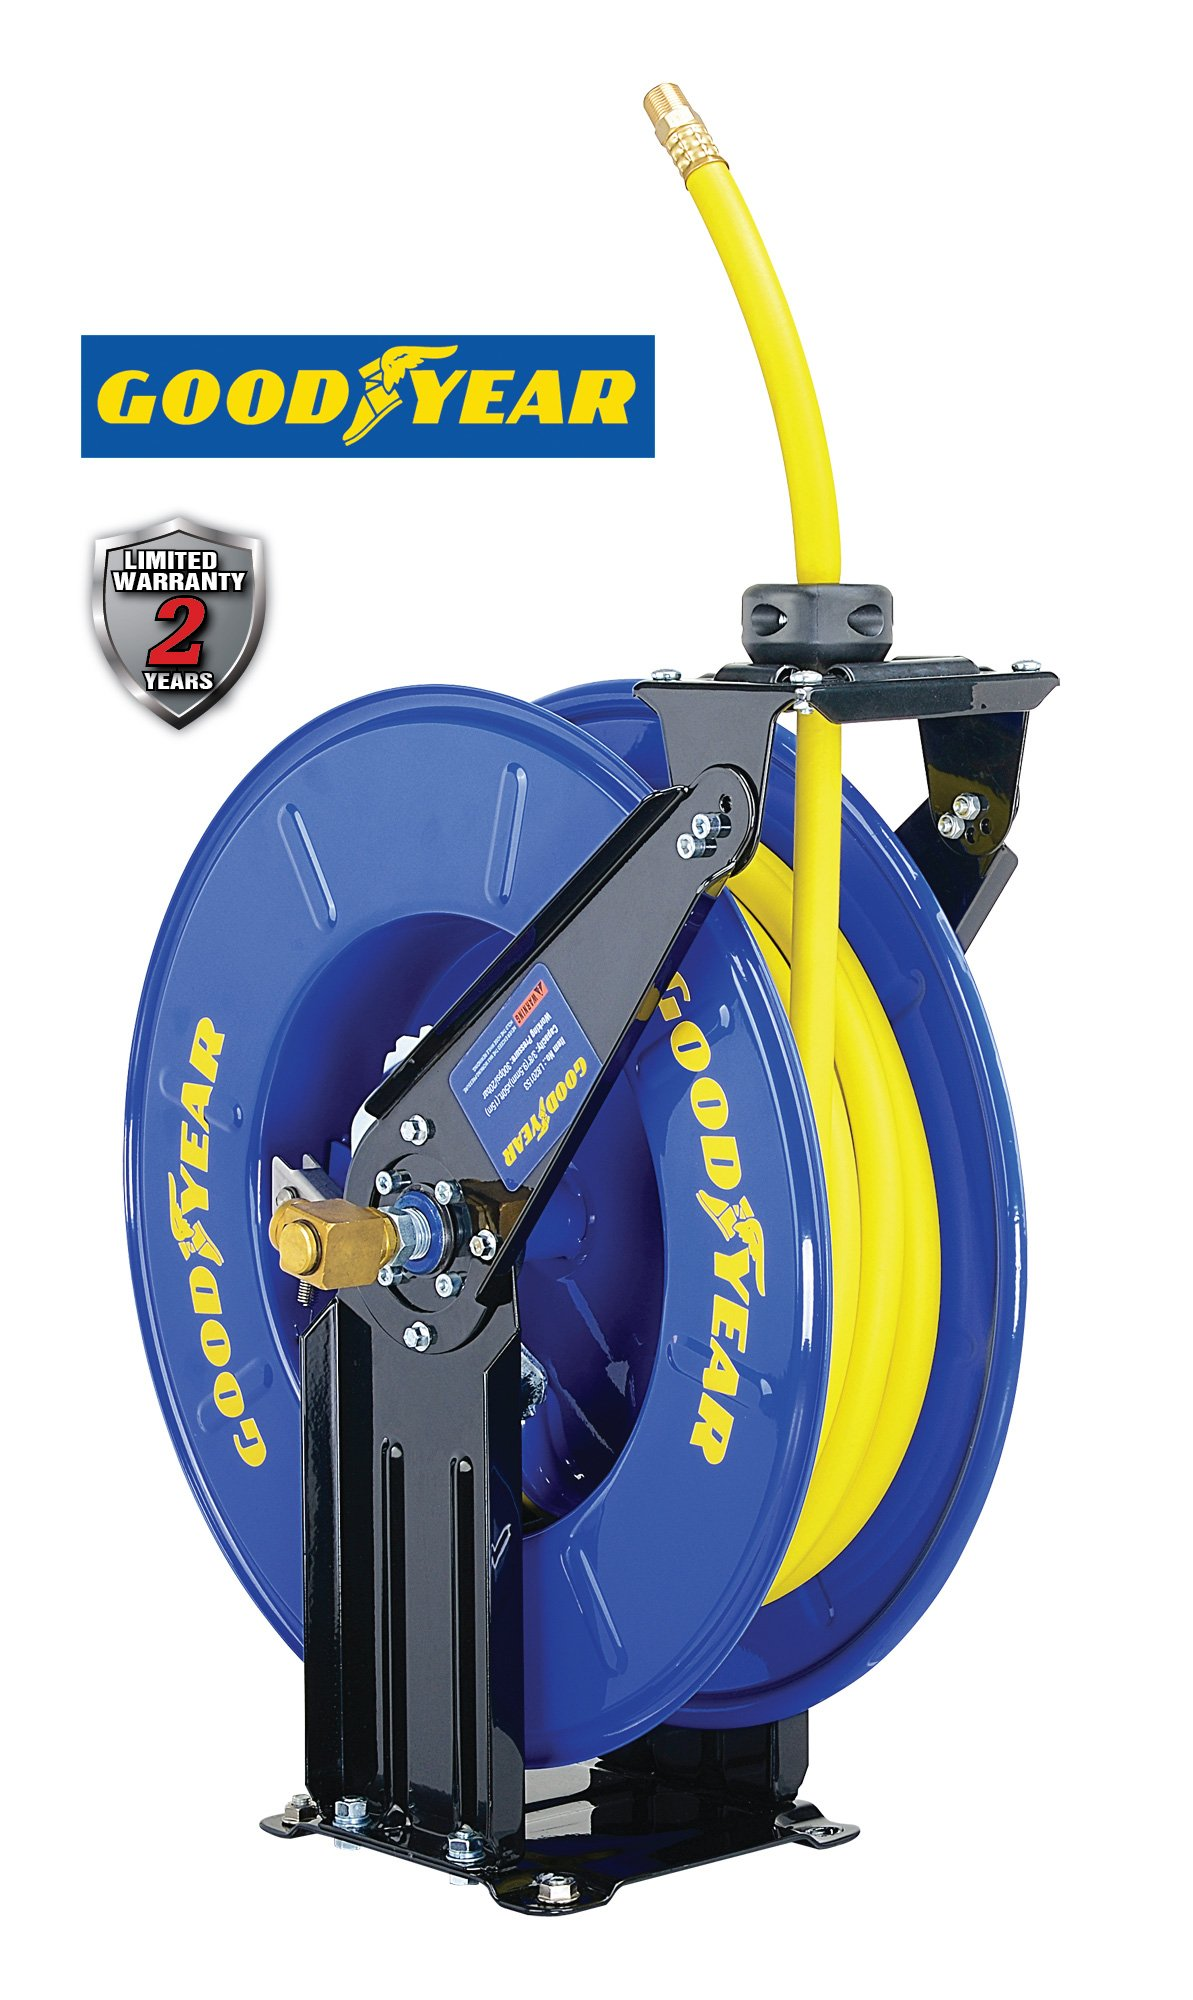 Goodyear Steel Retractable Air Compressor/Water Hose Reel with 3/8 in. x 50 ft. Rubber Hose, Max. 300PSI